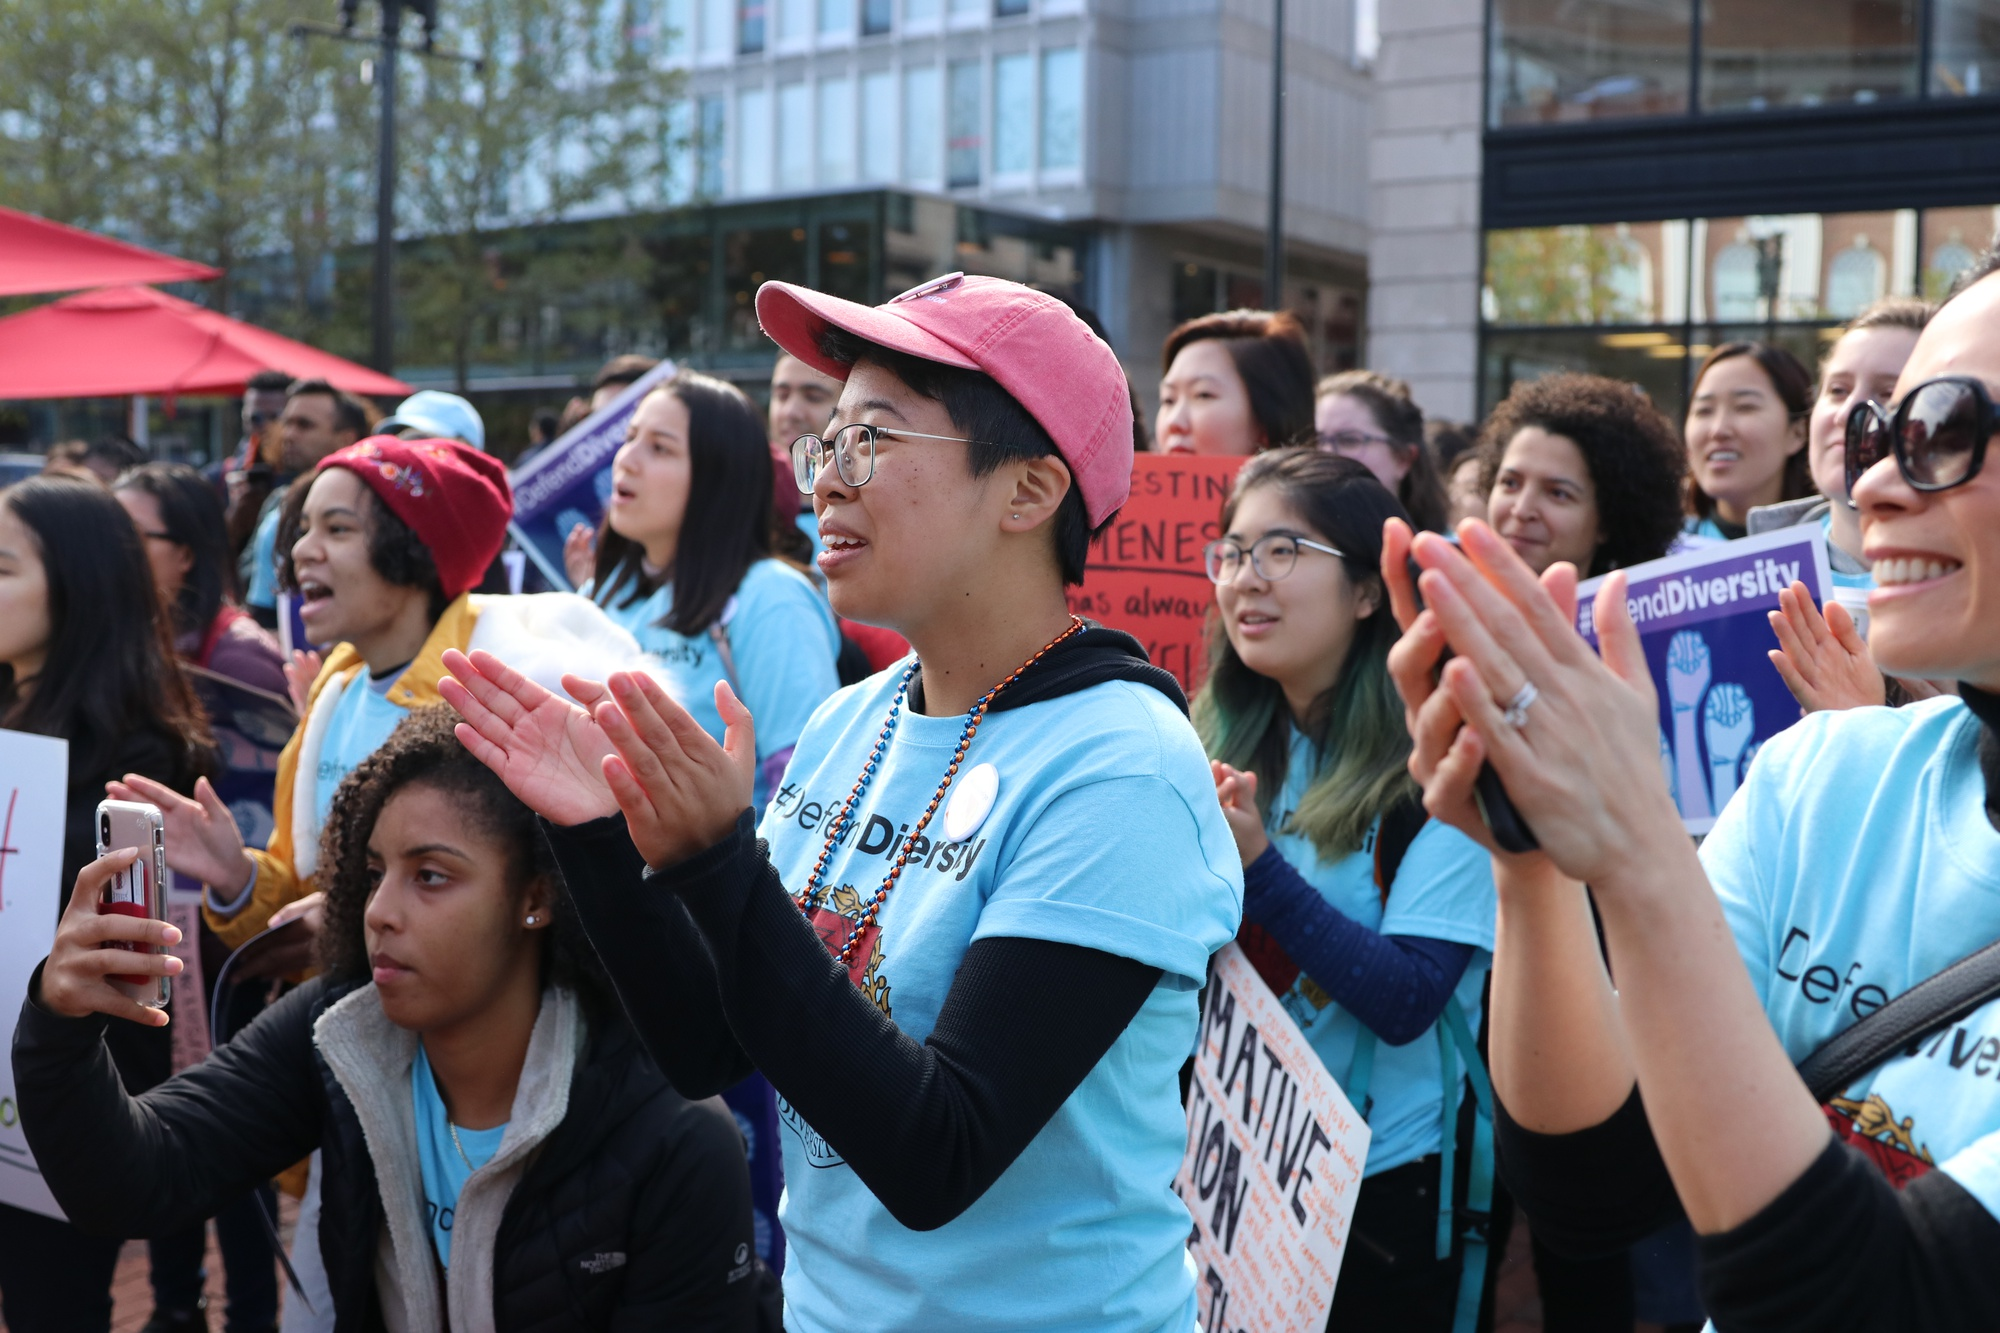 Sally Chen '19 came up with the name for the #DefendDiversity rally, held at the Harvard Square Pit on October 14th, the day before the admissions trial began.